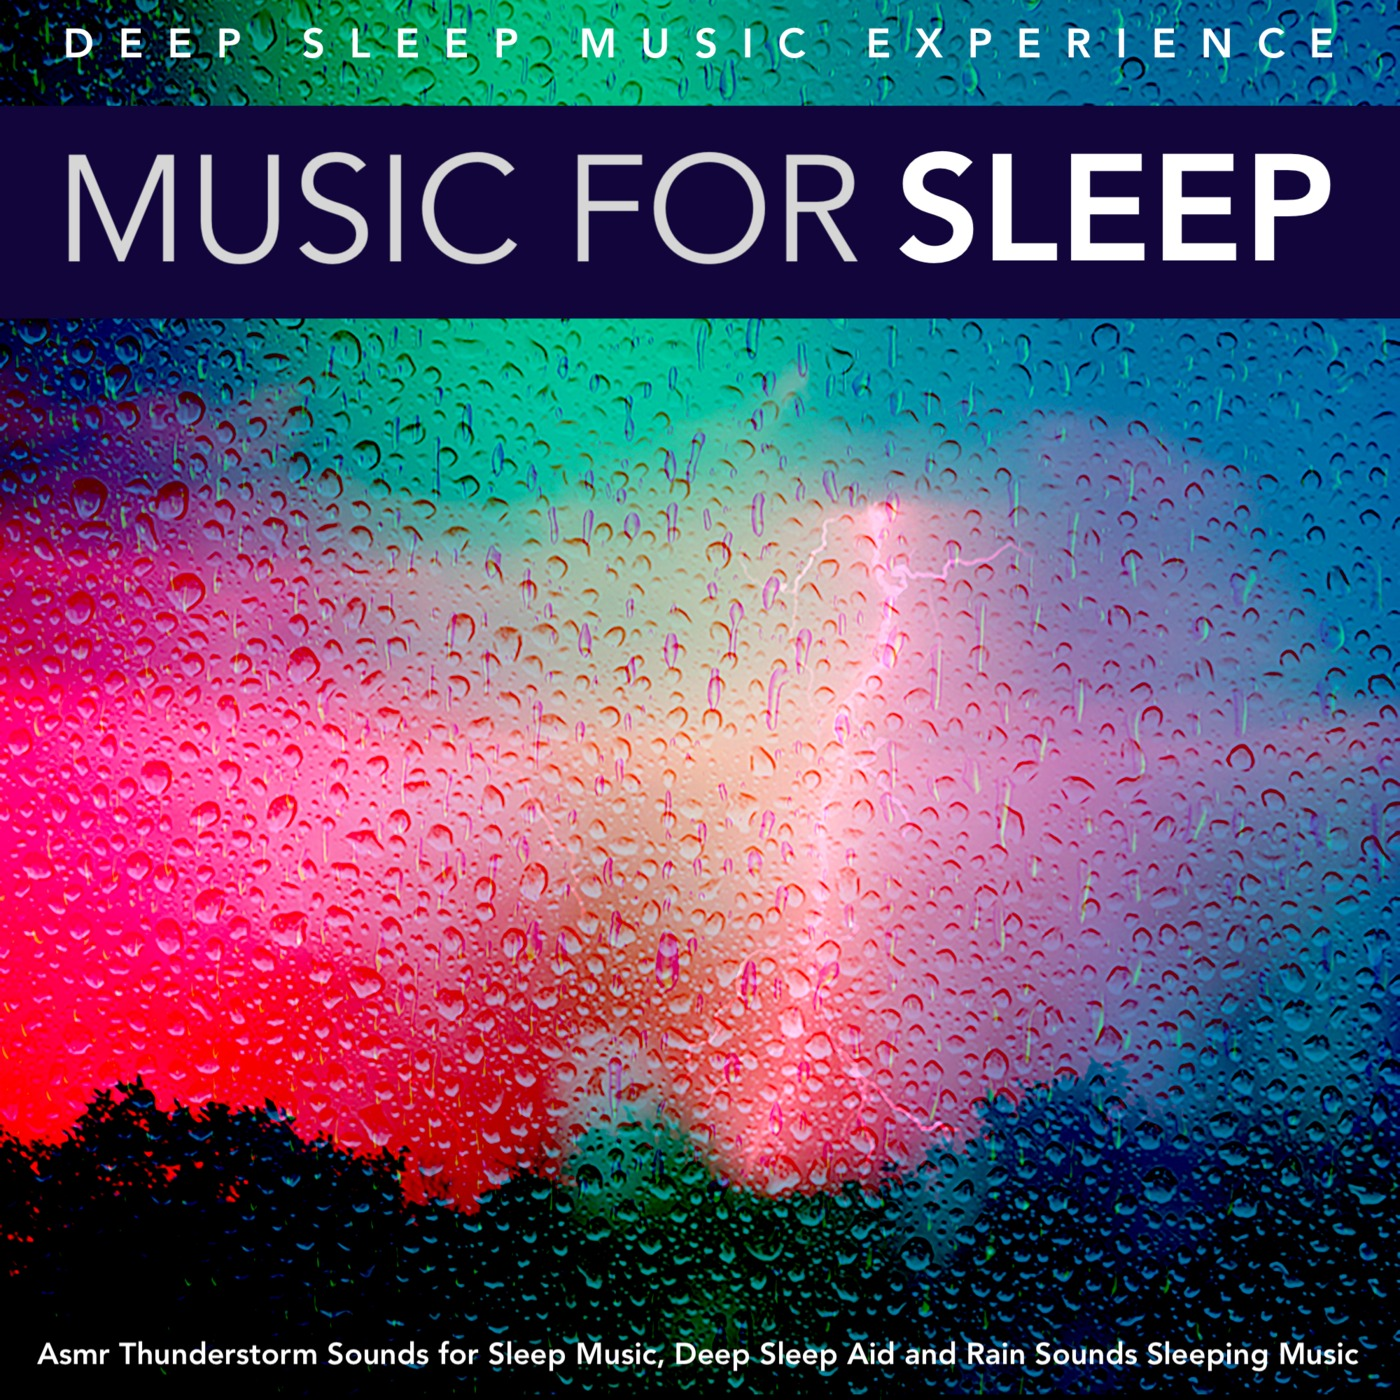 Listen Free to Deep Sleep Music Experience - Sleeping Music